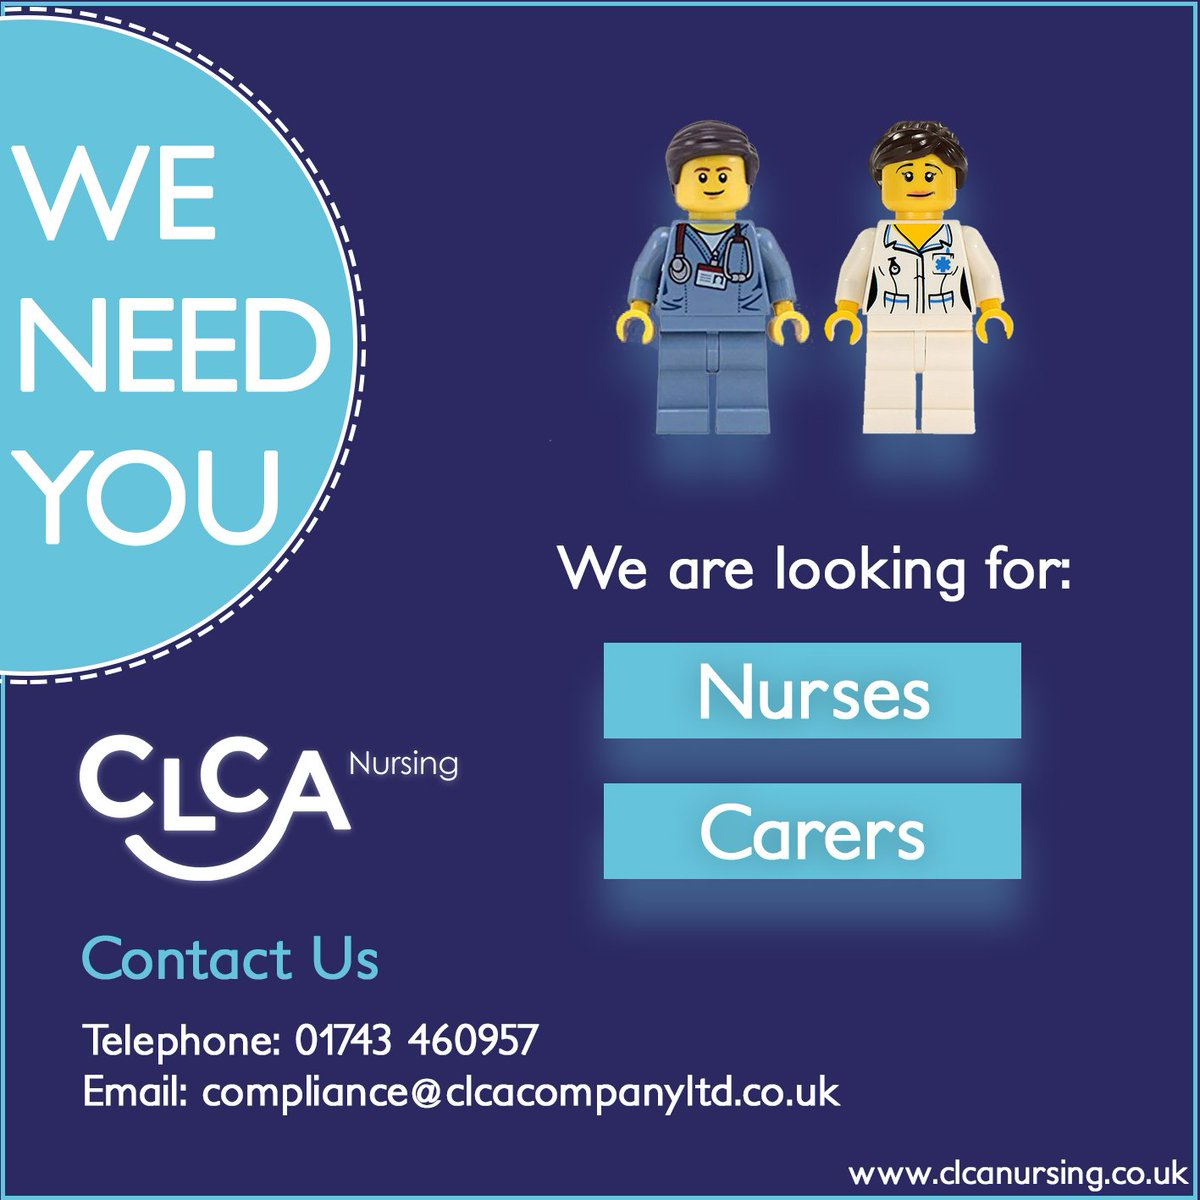 We are always on the look-out for nurses and carers to join the CLCA team.  Contact us to find out more 😁  #CLCA #Nursing #Nurse #Nurses #Carer #Carers #Recruitment #JoinUs